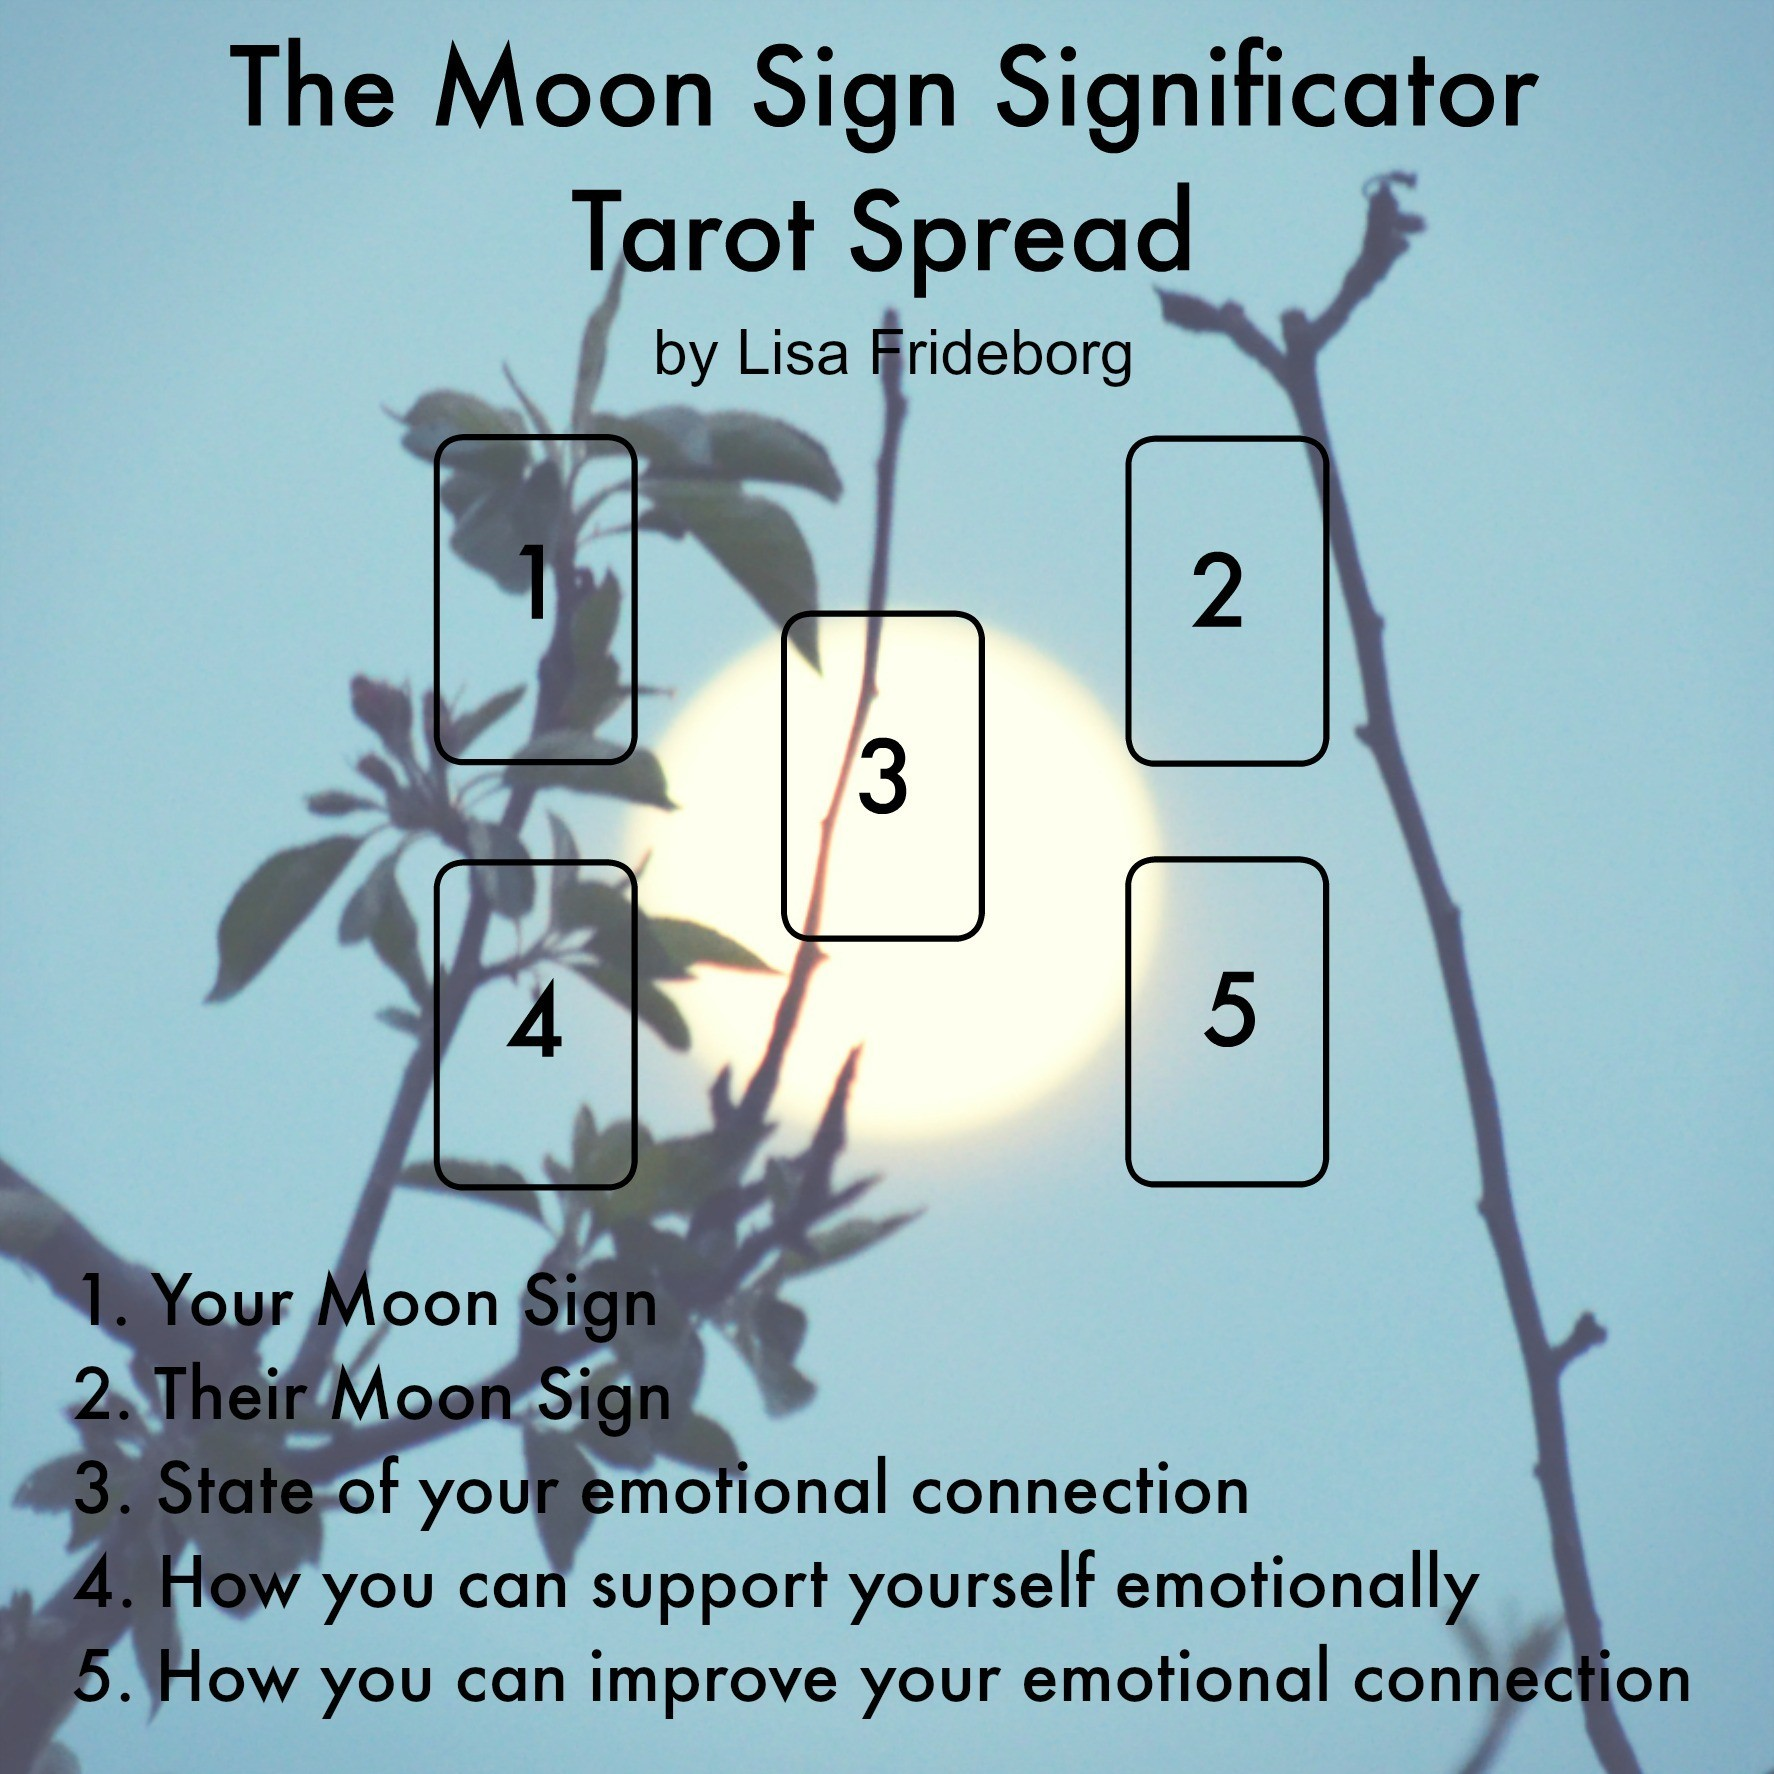 The Moon Sign Significator Tarot Spread